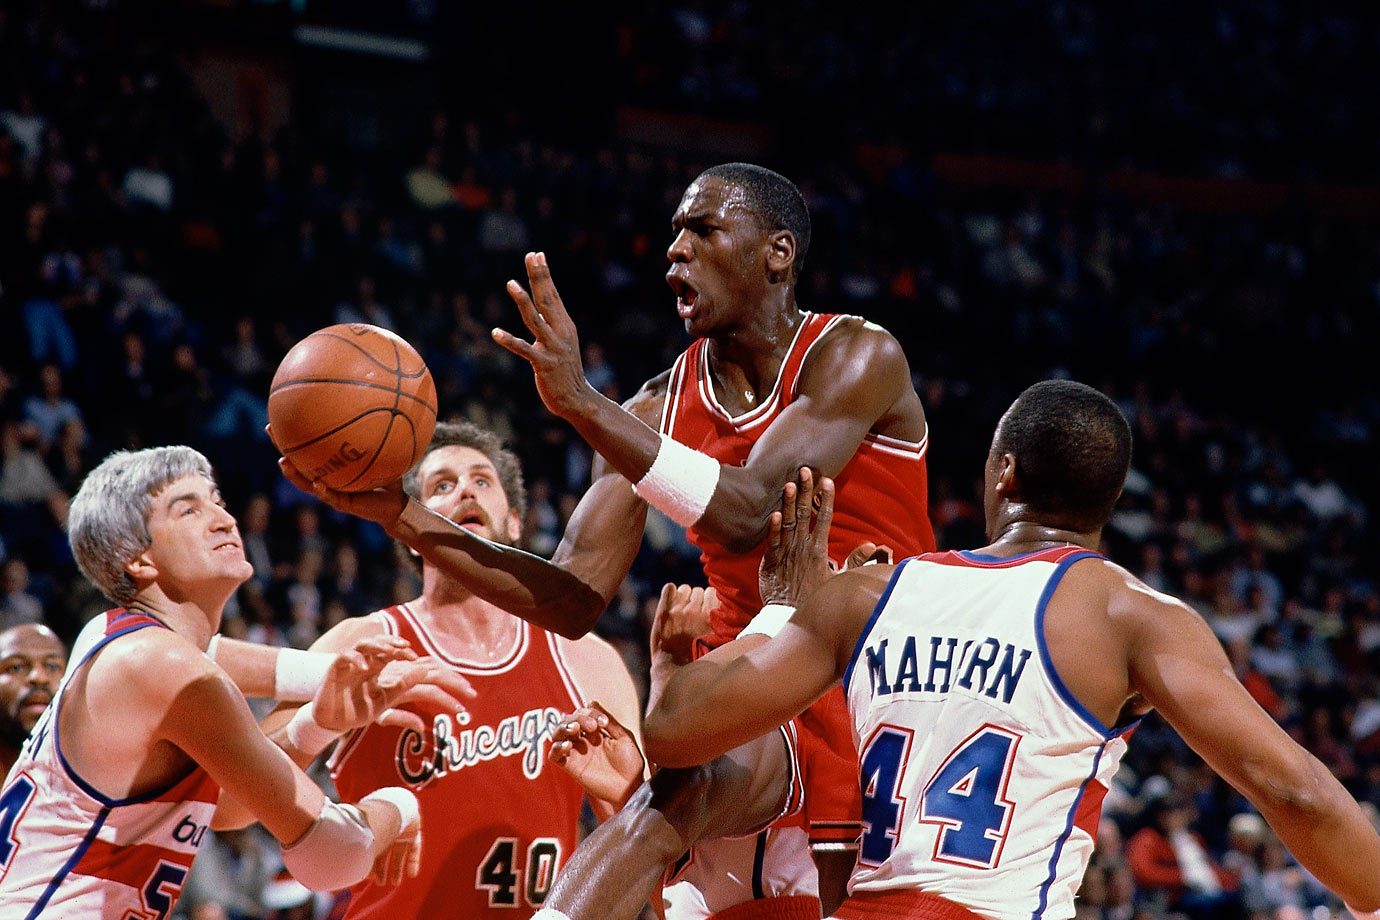 Michael Jordan tries to drive through traffic against Washington in January 1985. After averaging 28.2 points, 6.5 rebounds, 5.9 assists and 2.4 steals, Jordan was named Rookie of the Year and selected for the All-Star Game, the first of his 14 selections.